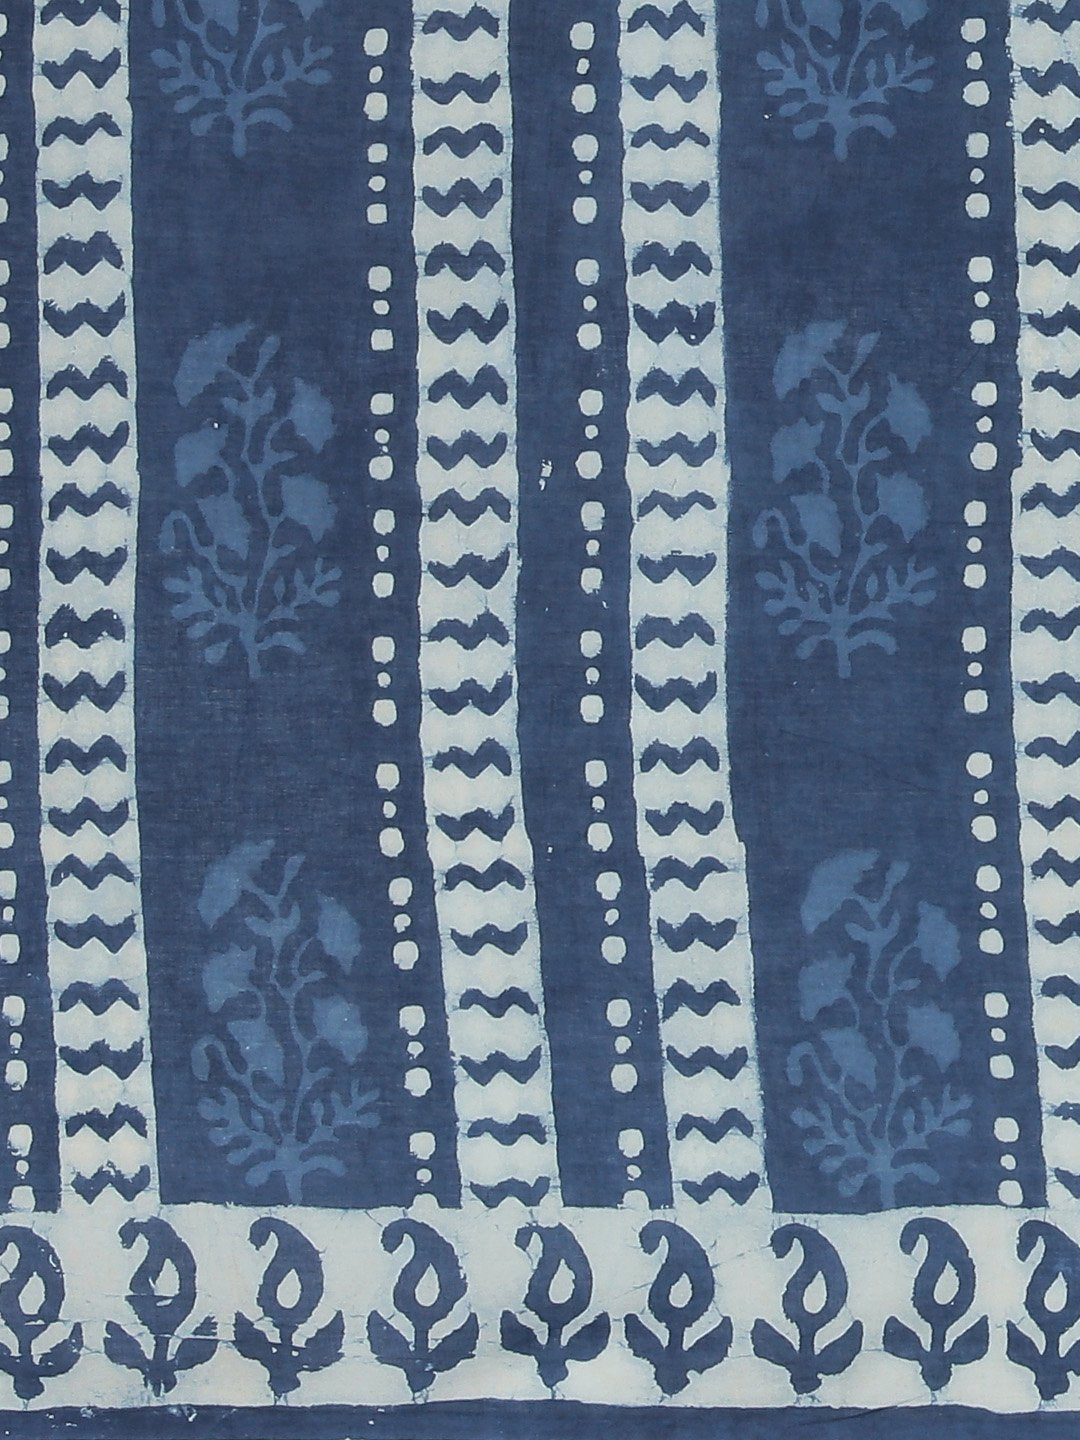 Blue White Dabu Handblock Print Bagru Saree-Saree-Kalakari India-BHKPSA0096-Cotton, Dabu, Geographical Indication, Hand Blocks, Hand Crafted, Heritage Prints, Indigo, Natural Dyes, Sarees, Sustainable Fabrics-[Linen,Ethnic,wear,Fashionista,Handloom,Handicraft,Indigo,blockprint,block,print,Cotton,Chanderi,Blue, latest,classy,party,bollywood,trendy,summer,style,traditional,formal,elegant,unique,style,hand,block,print, dabu,booti,gift,present,glamorous,affordable,collectible,Sari,Saree,printed, hol